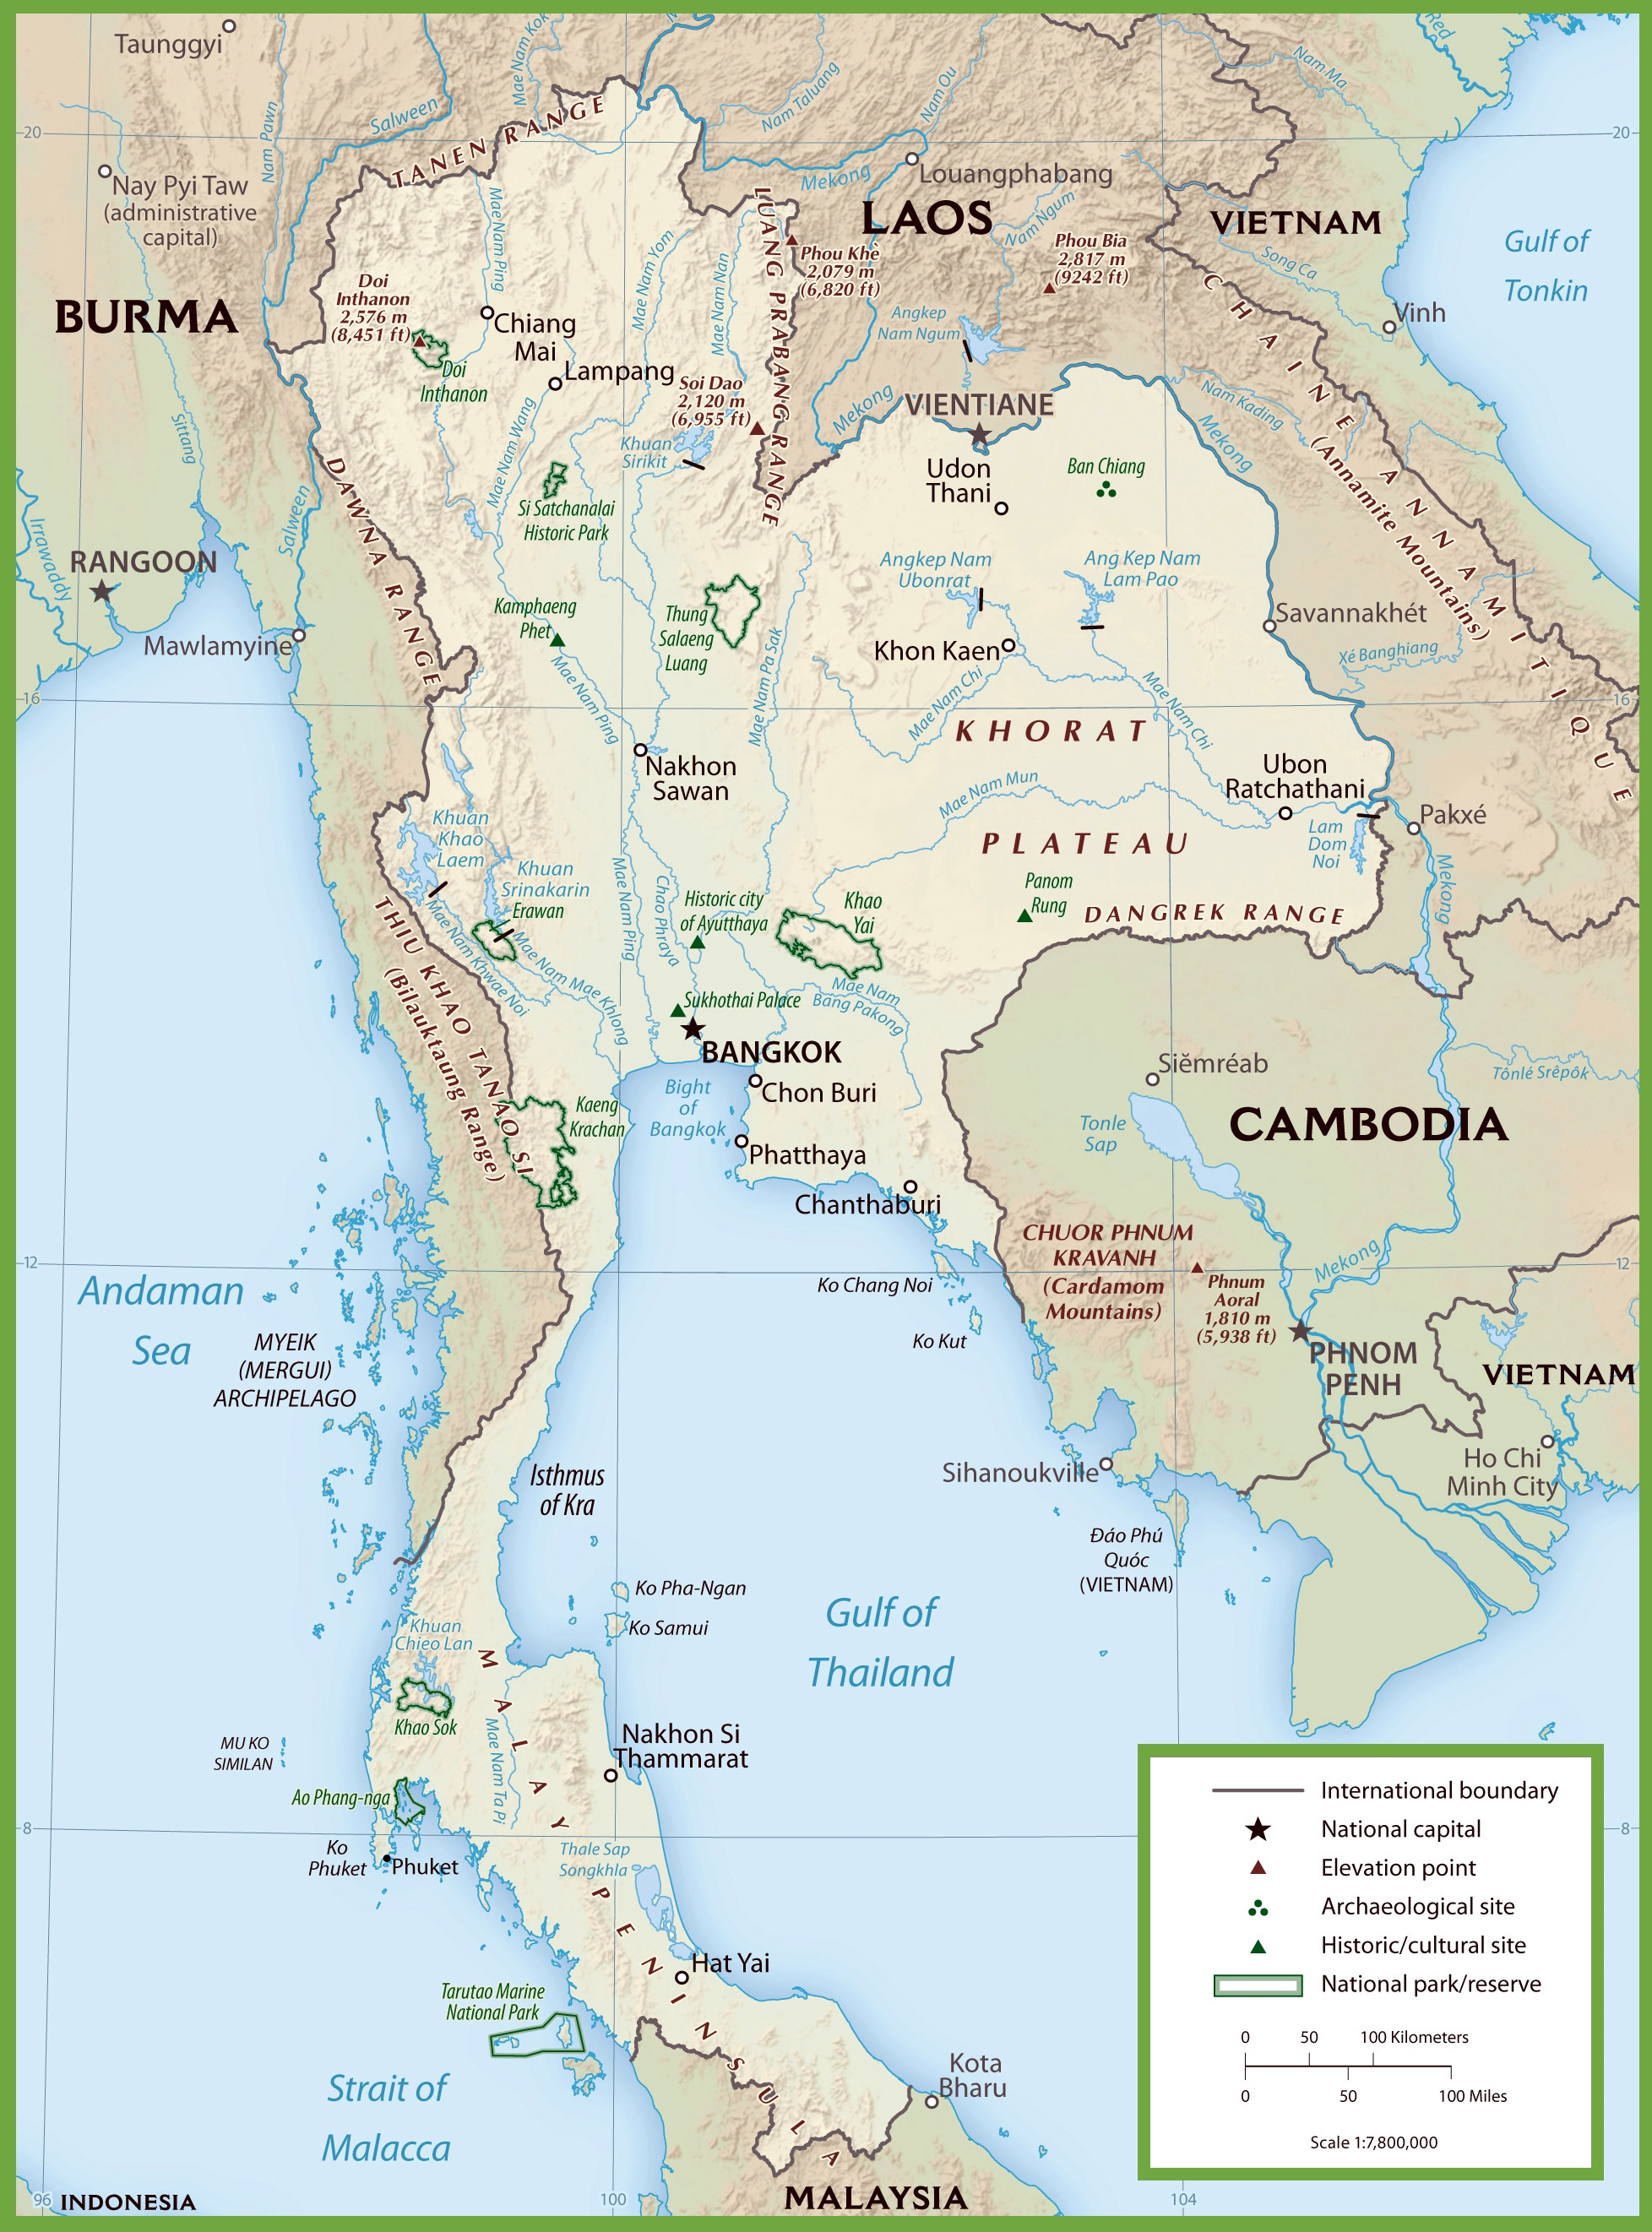 Thailand national park map on all 58 national parks, printable map national parks, map of all resorts, map of all water, federal and national parks, map of county parks, map west united states parks, map of all native american reservations, map of all caves, map of all sinkholes, map of all peninsulas, colorado national parks, top 25 national parks, map of all hospitals, map showing national parks, map of all air force bases, map of all casinos, map of all animals, map with national parks, massachusetts national parks,